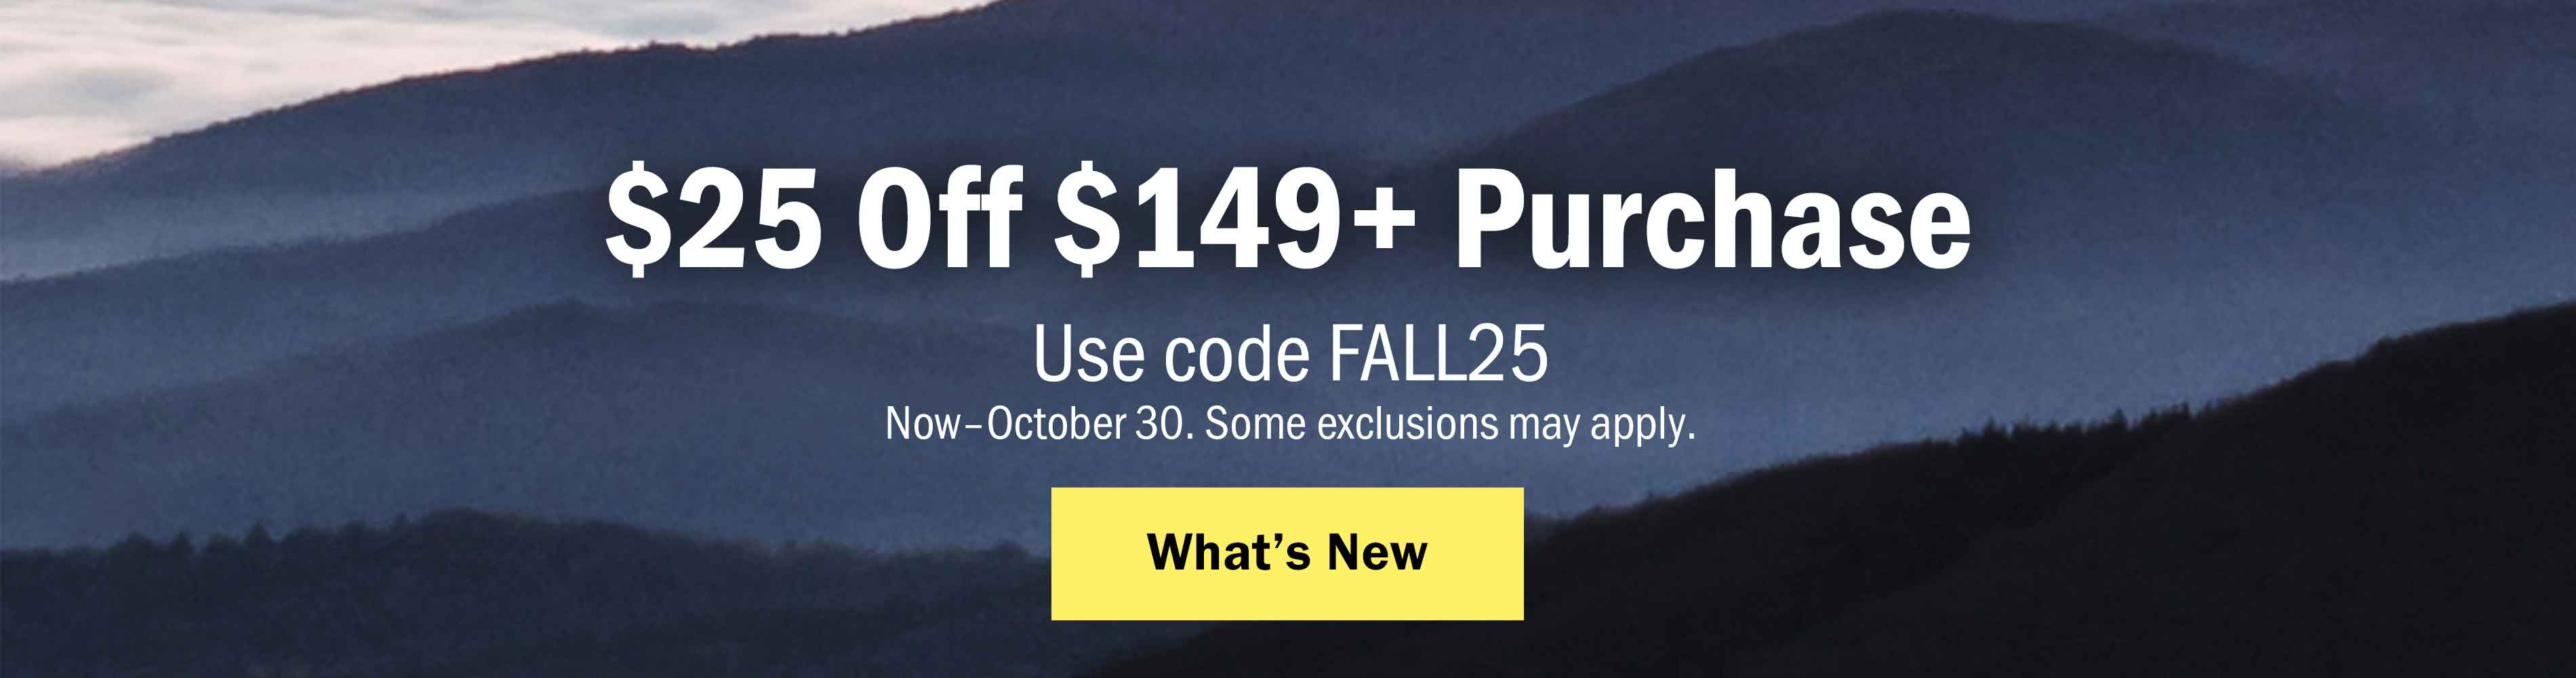 $25 Off $149+ Purchase - Use code FALL25 now through October 30. Some exclusions may apply. See What's New >